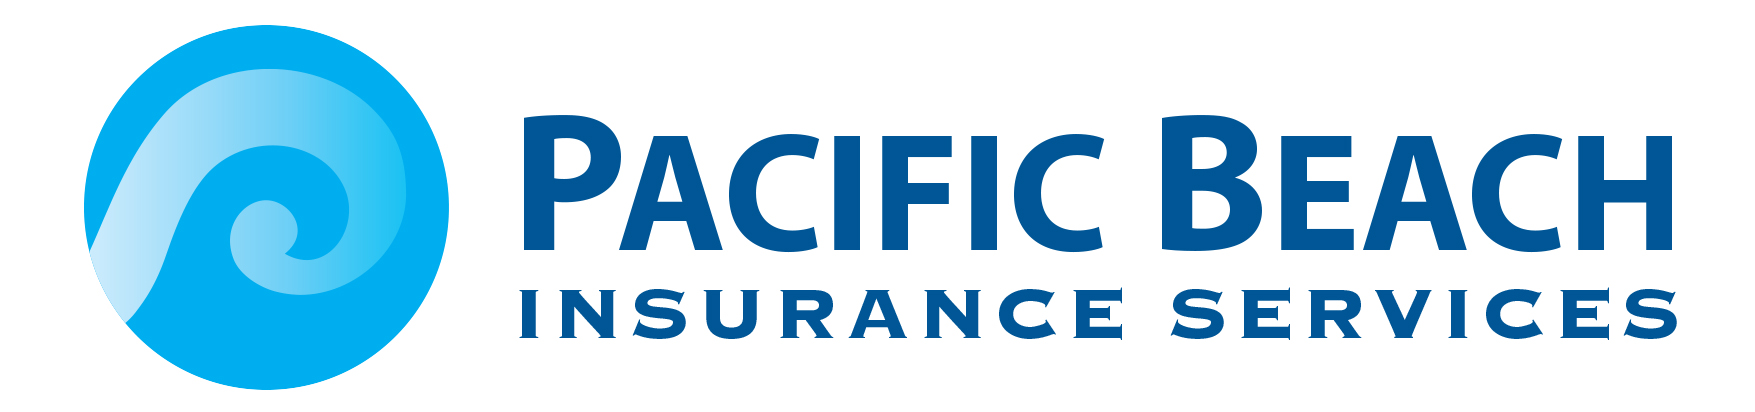 PacificBeach Logo (2).jpg